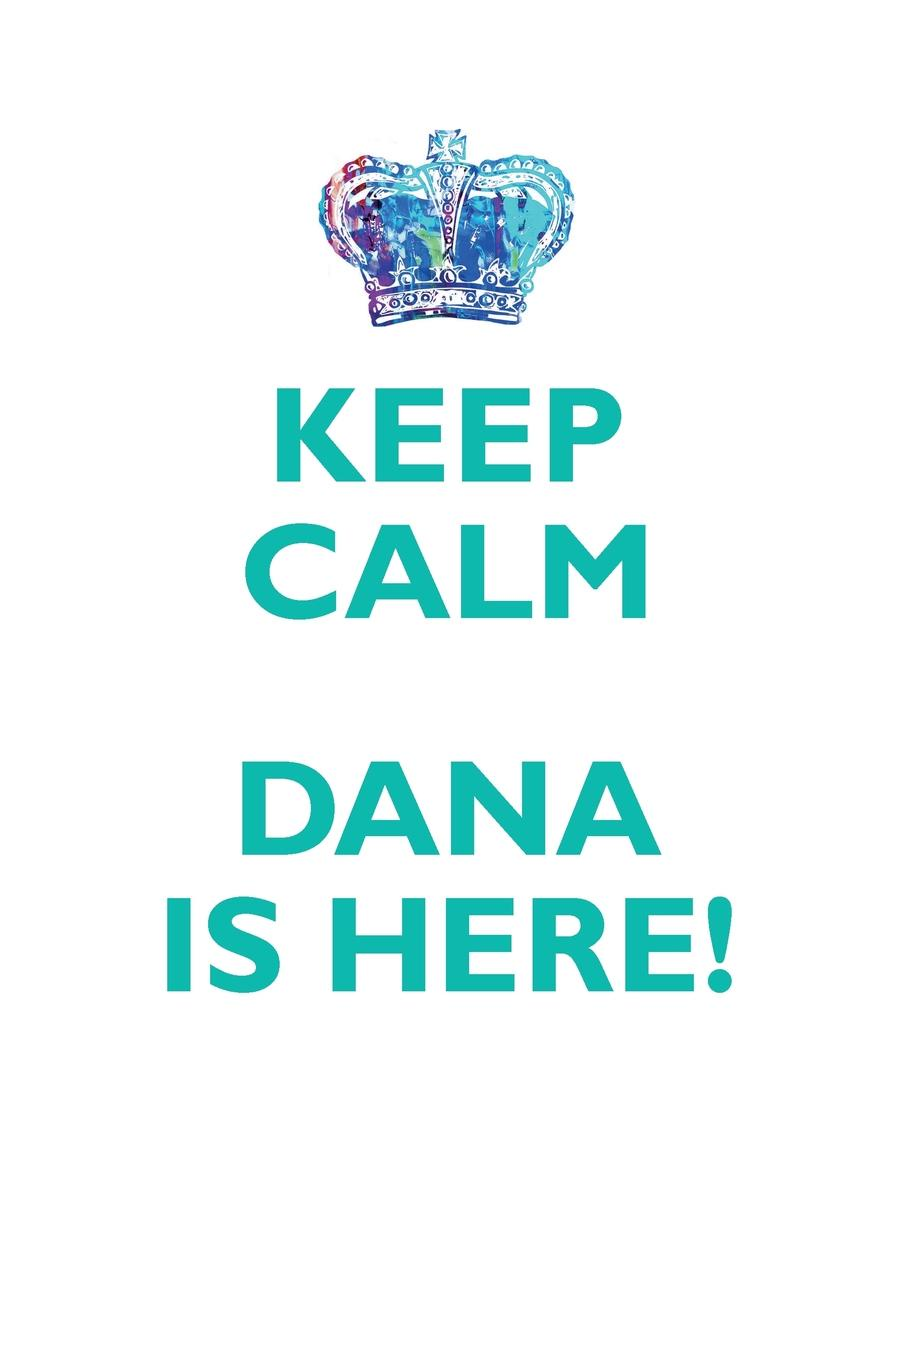 KEEP CALM, DANA IS HERE AFFIRMATIONS WORKBOOK Positive Affirmations Workbook Includes. Mentoring Questions, Guidance, Supporting You